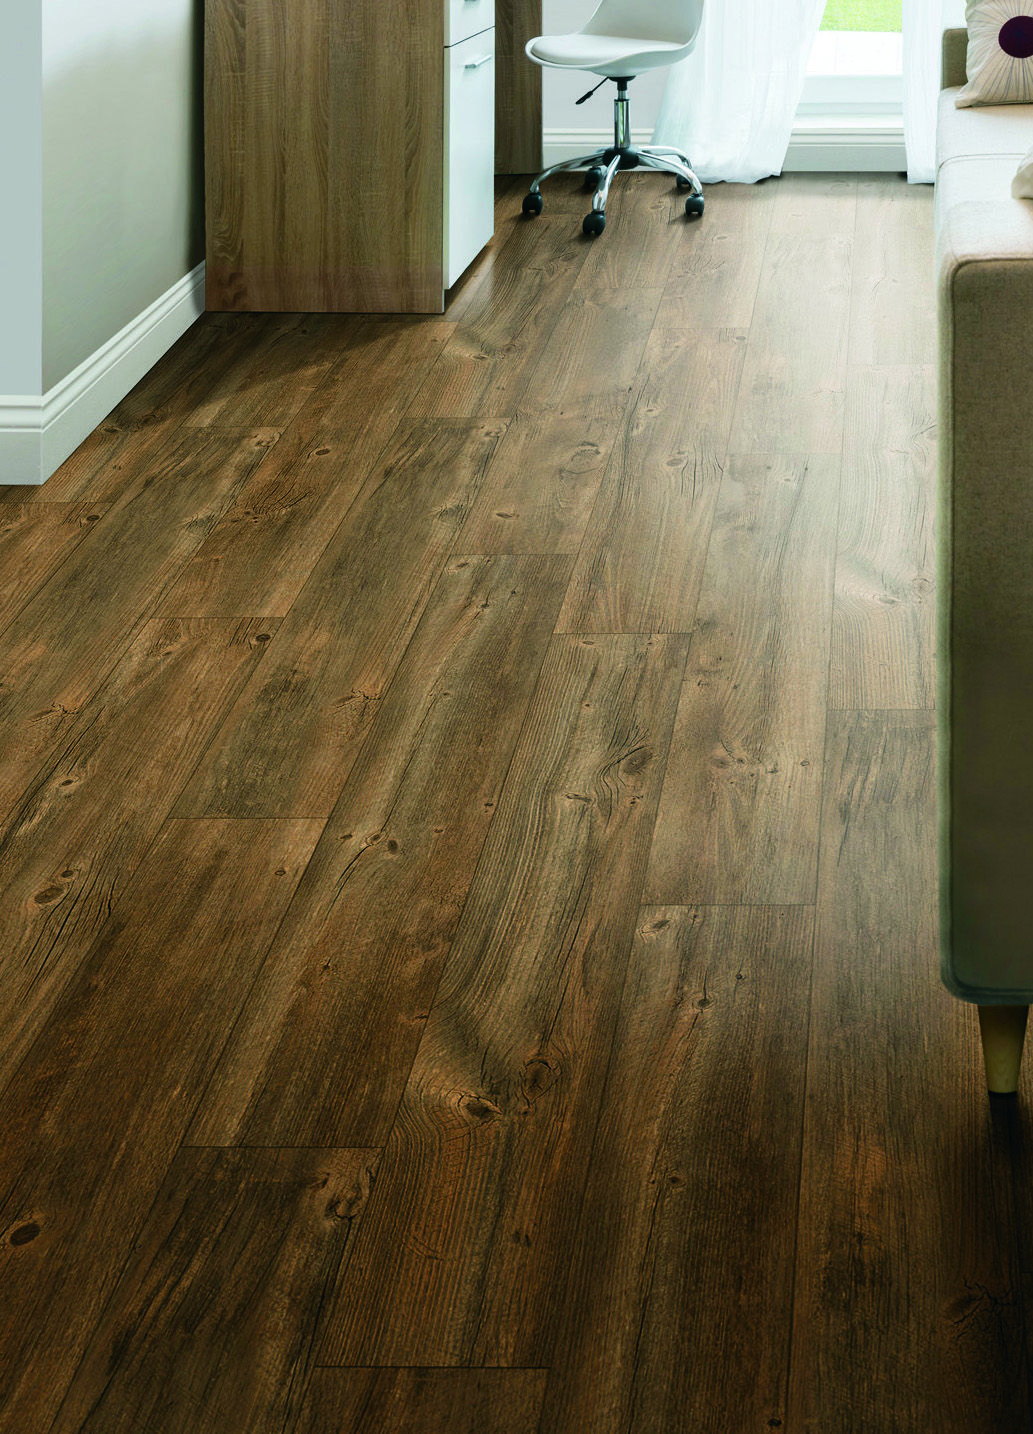 Add The Remarkable Primitive Beauty Of Aged Wood To Your Floors With Bravado Laminate Flooring Enhance Laminate Flooring Flooring Affordable Hardwood Flooring